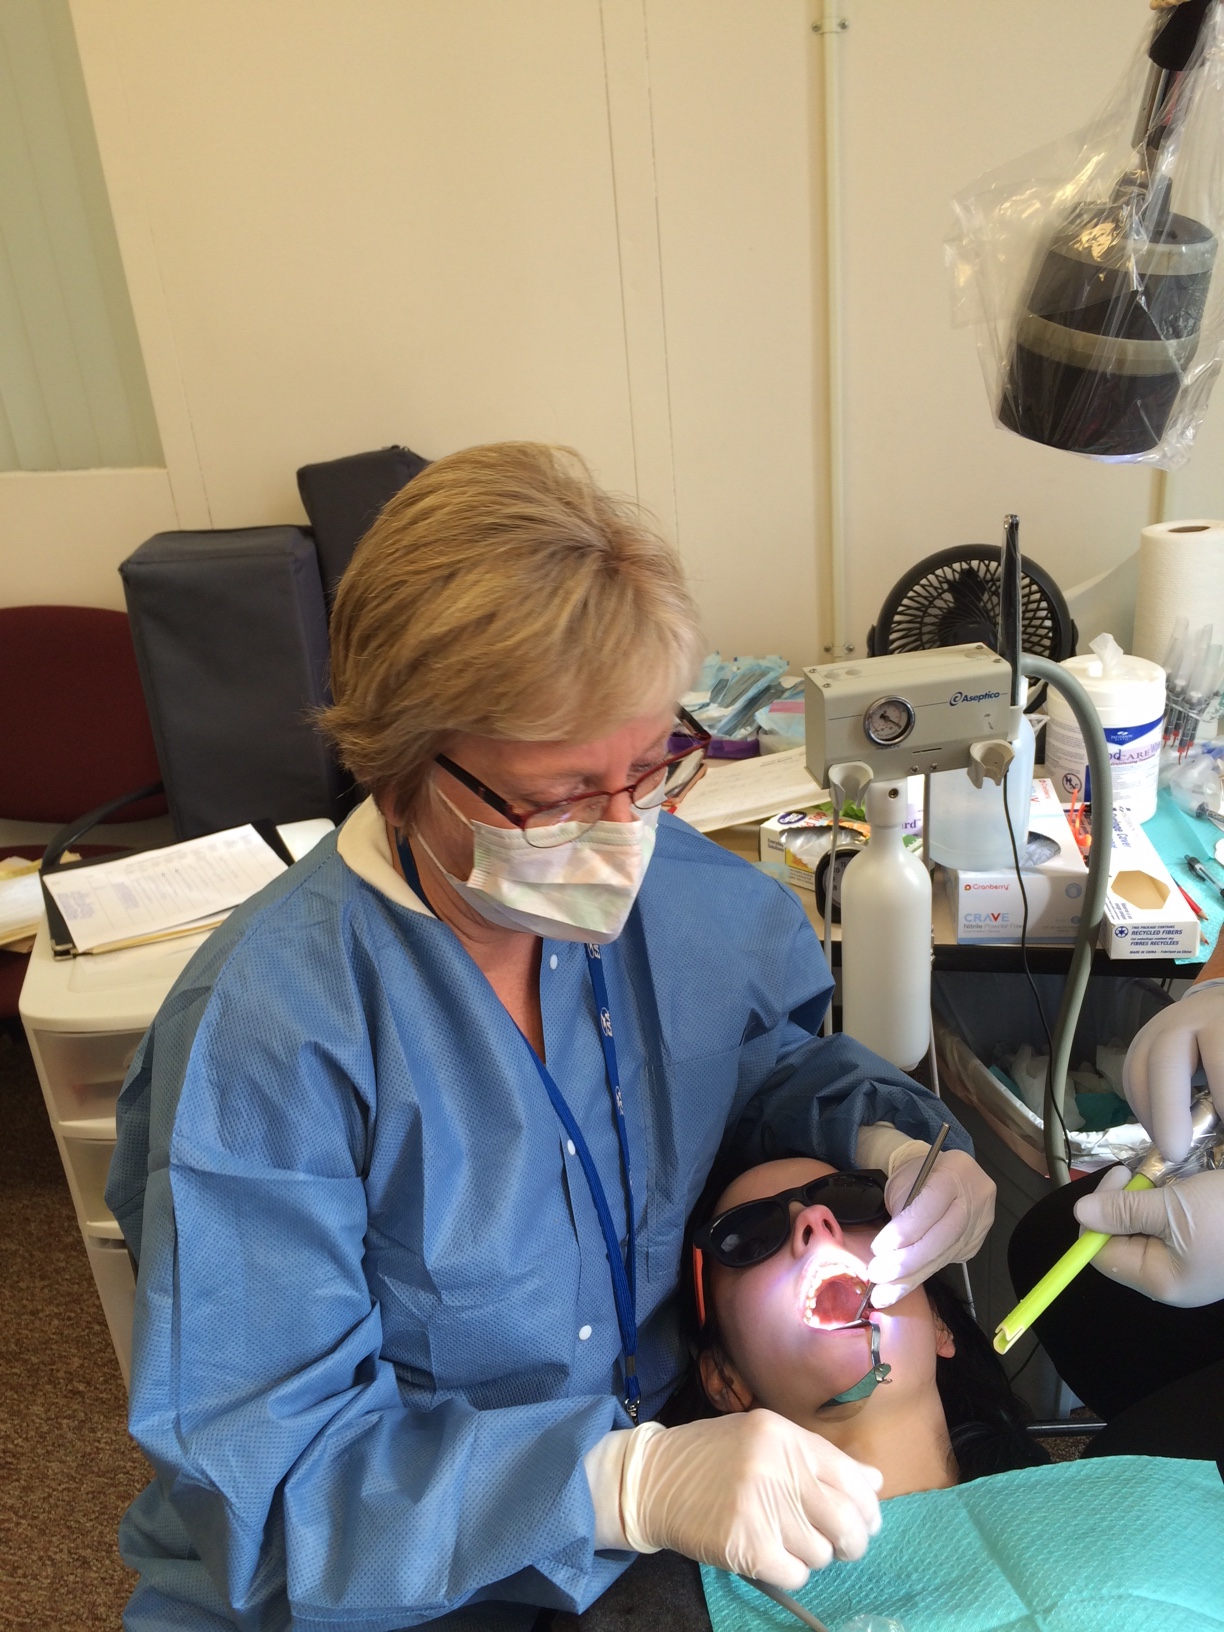 Students receiving dental care and instruction.